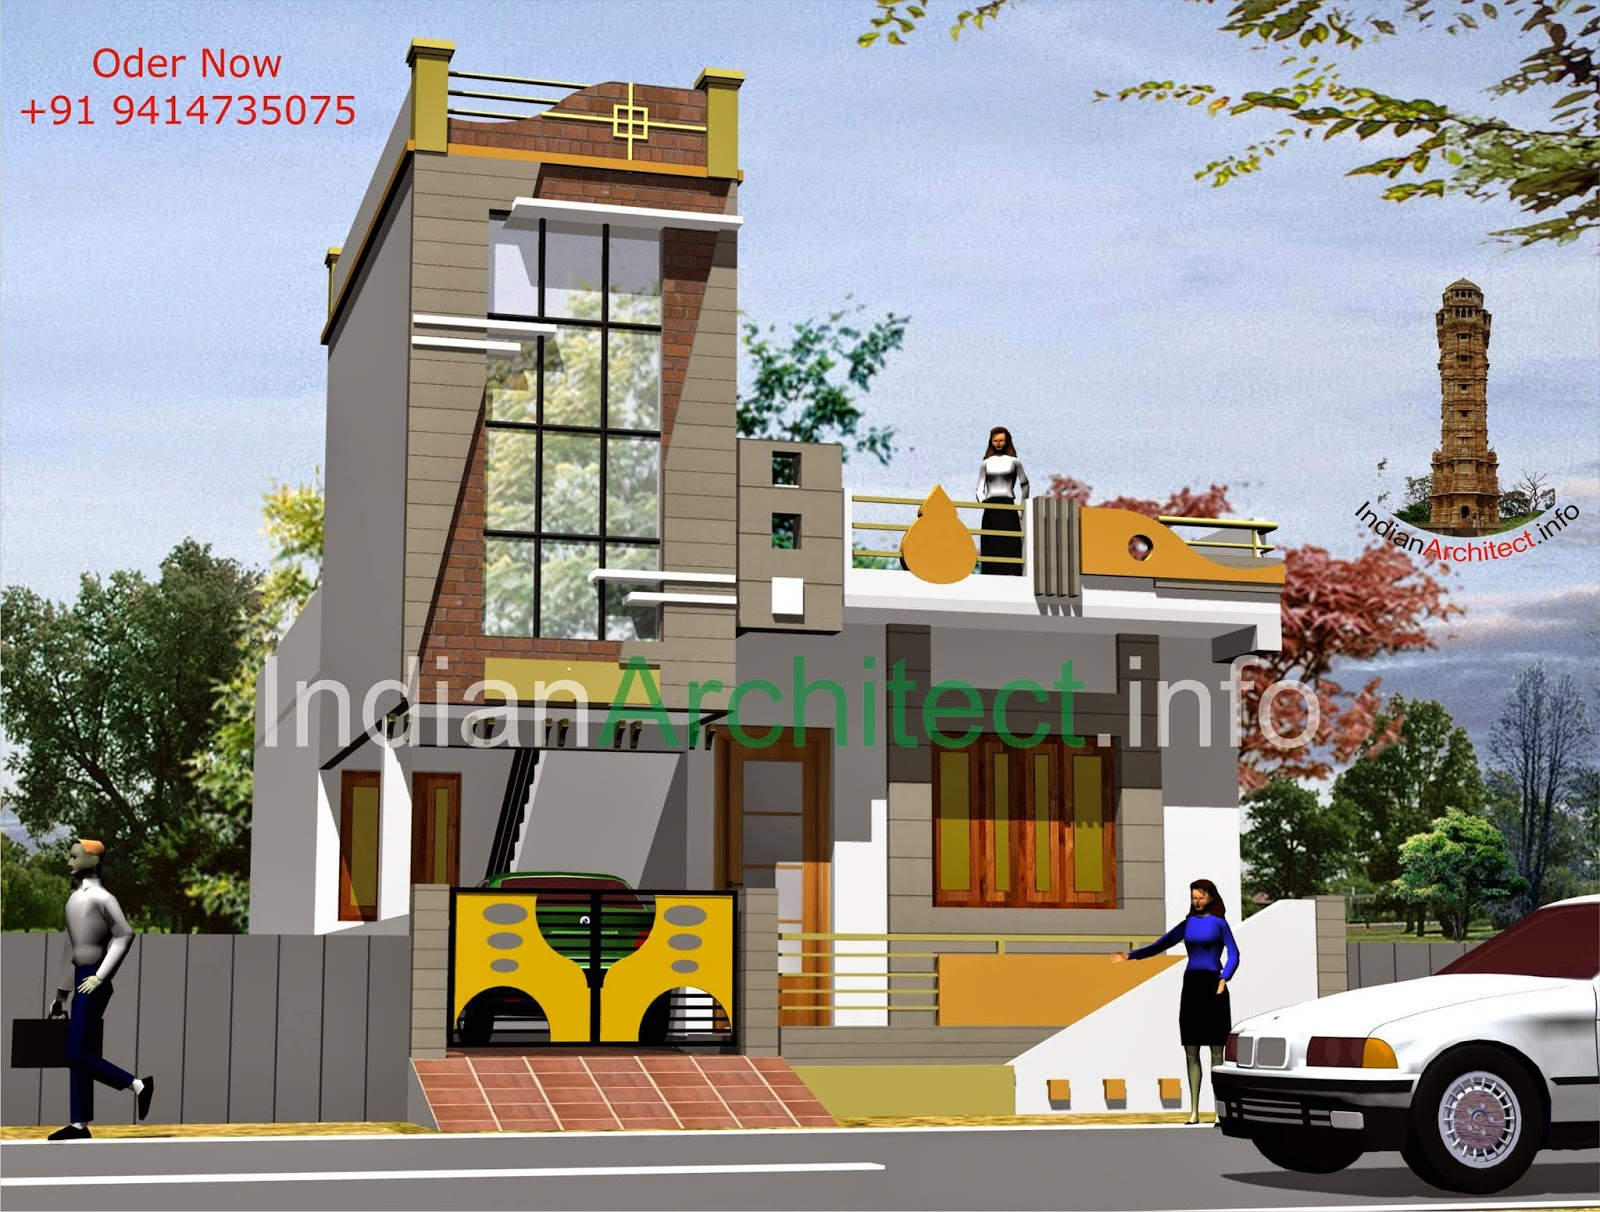 Mr Changeriya Ji House Plan Exterior Design At Neemuch Indian Architect